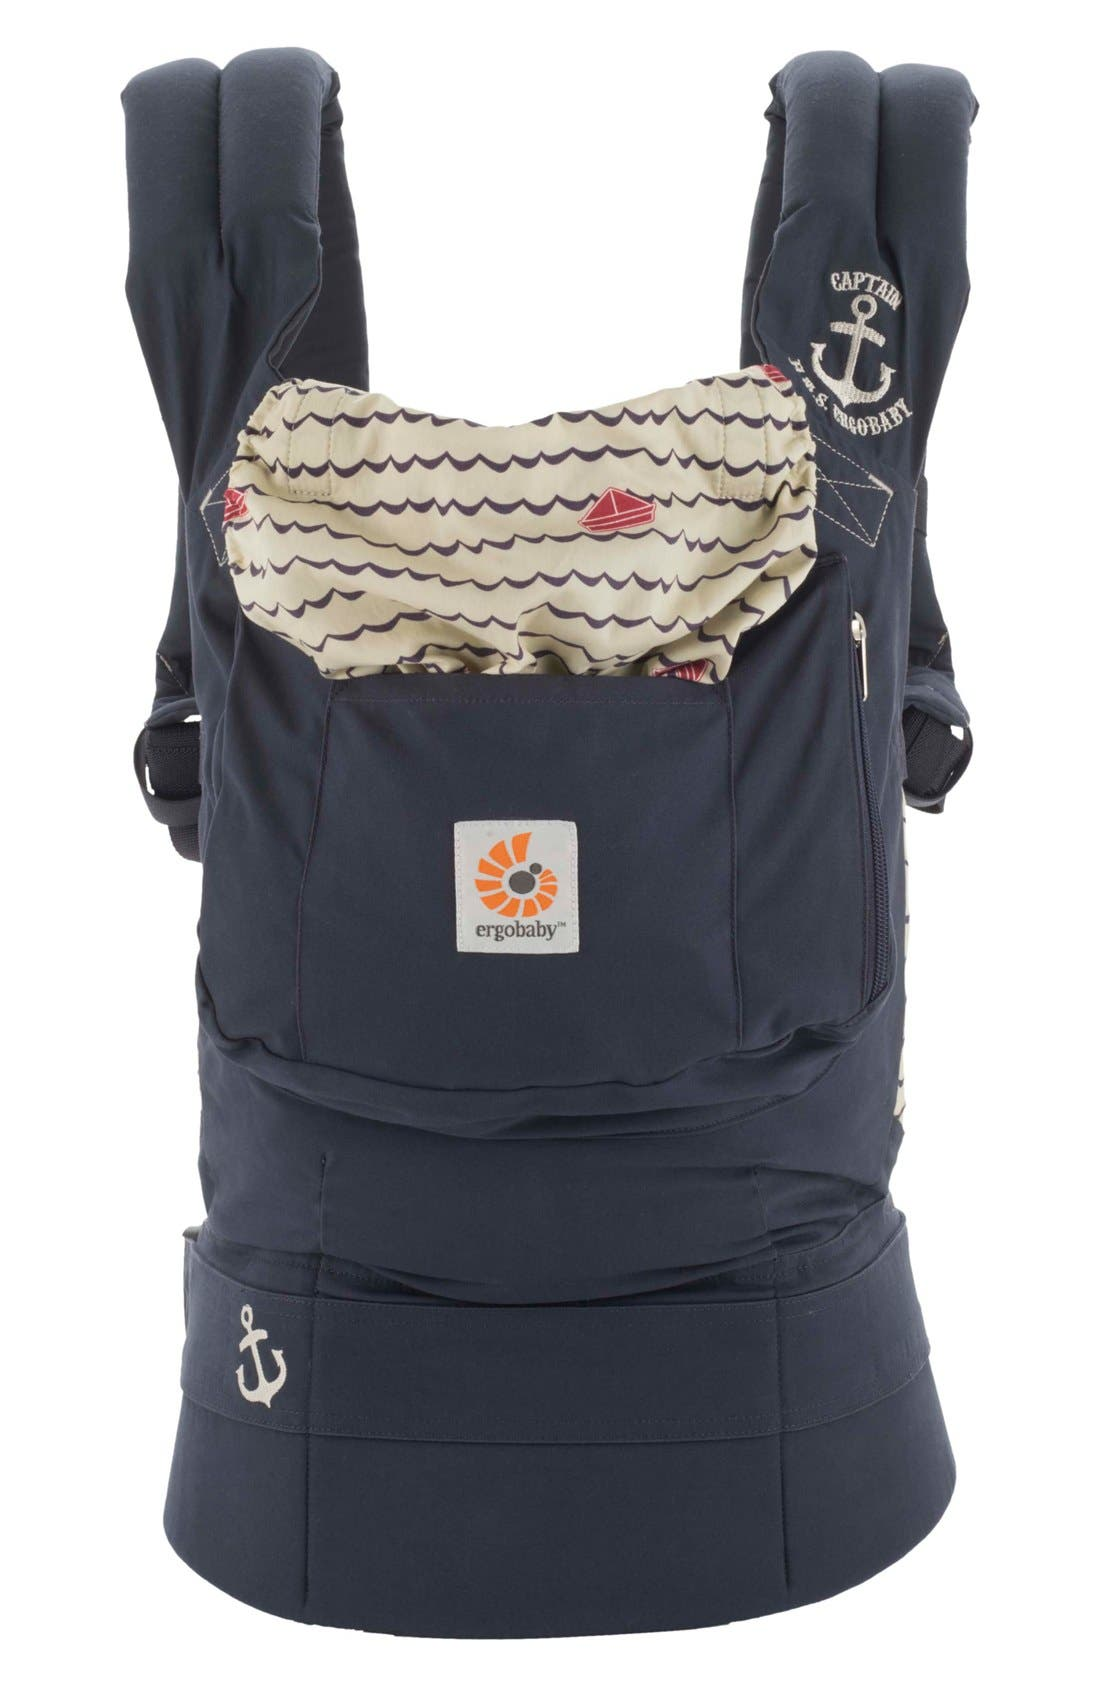 ERGOBABY 'Original' Cotton Baby Carrier